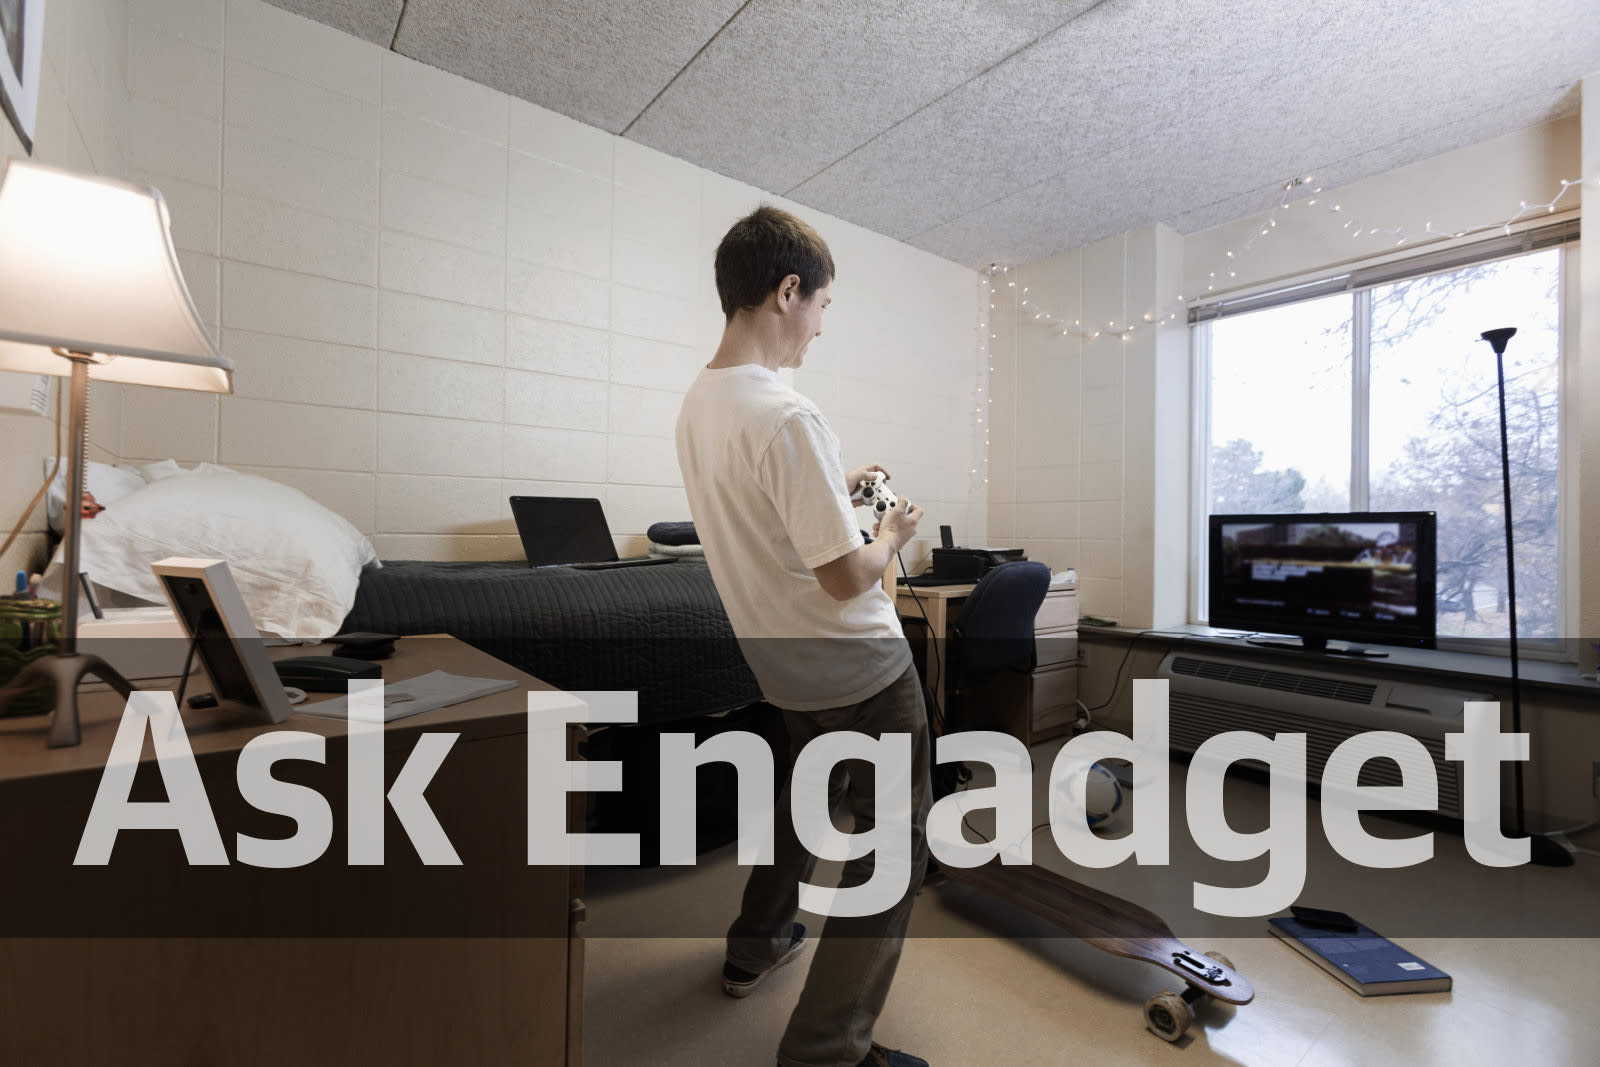 ask engadget do i need a tv for my dorm room